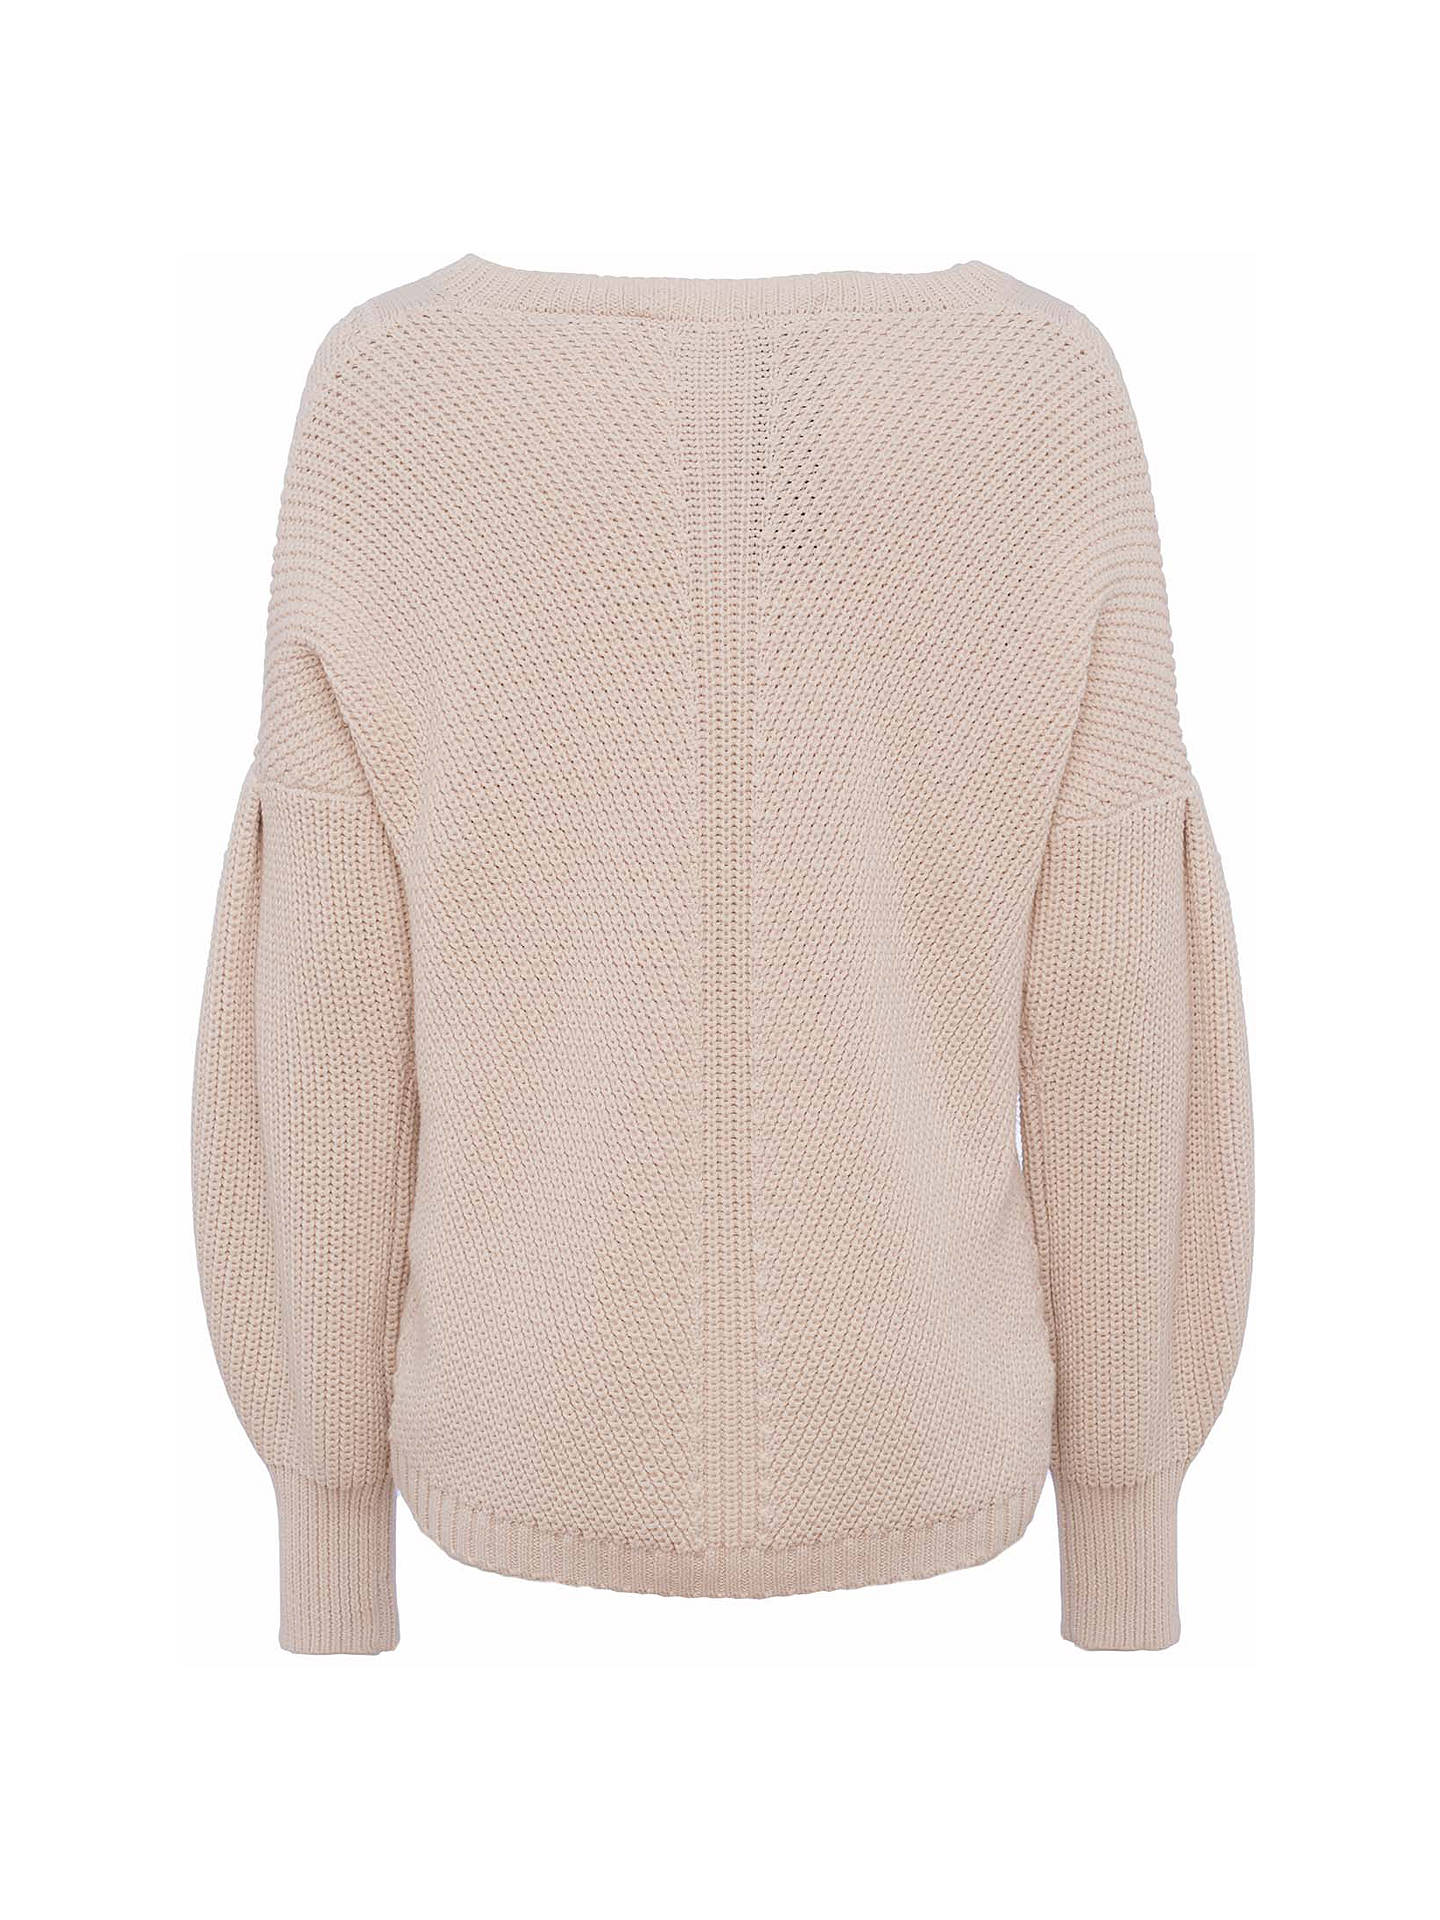 BuyFrench Connection Millie Mozart V-Neck Jumper, Classic Cream, XS Online at johnlewis.com